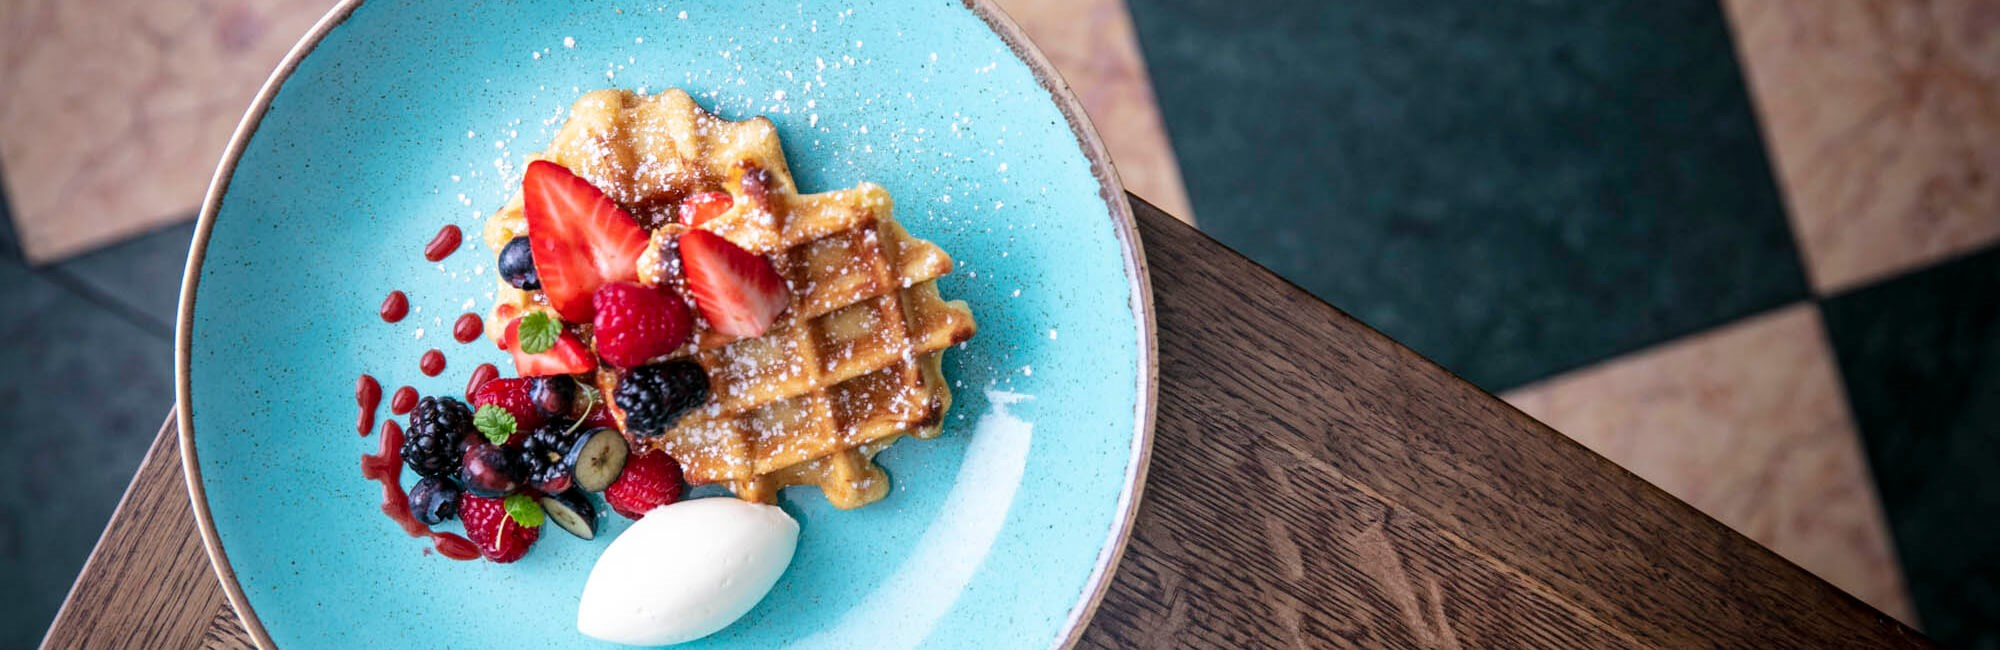 Weekend Brunch with Vanilla waffles at J Sheekey Atlantic Bar in Leicester Square